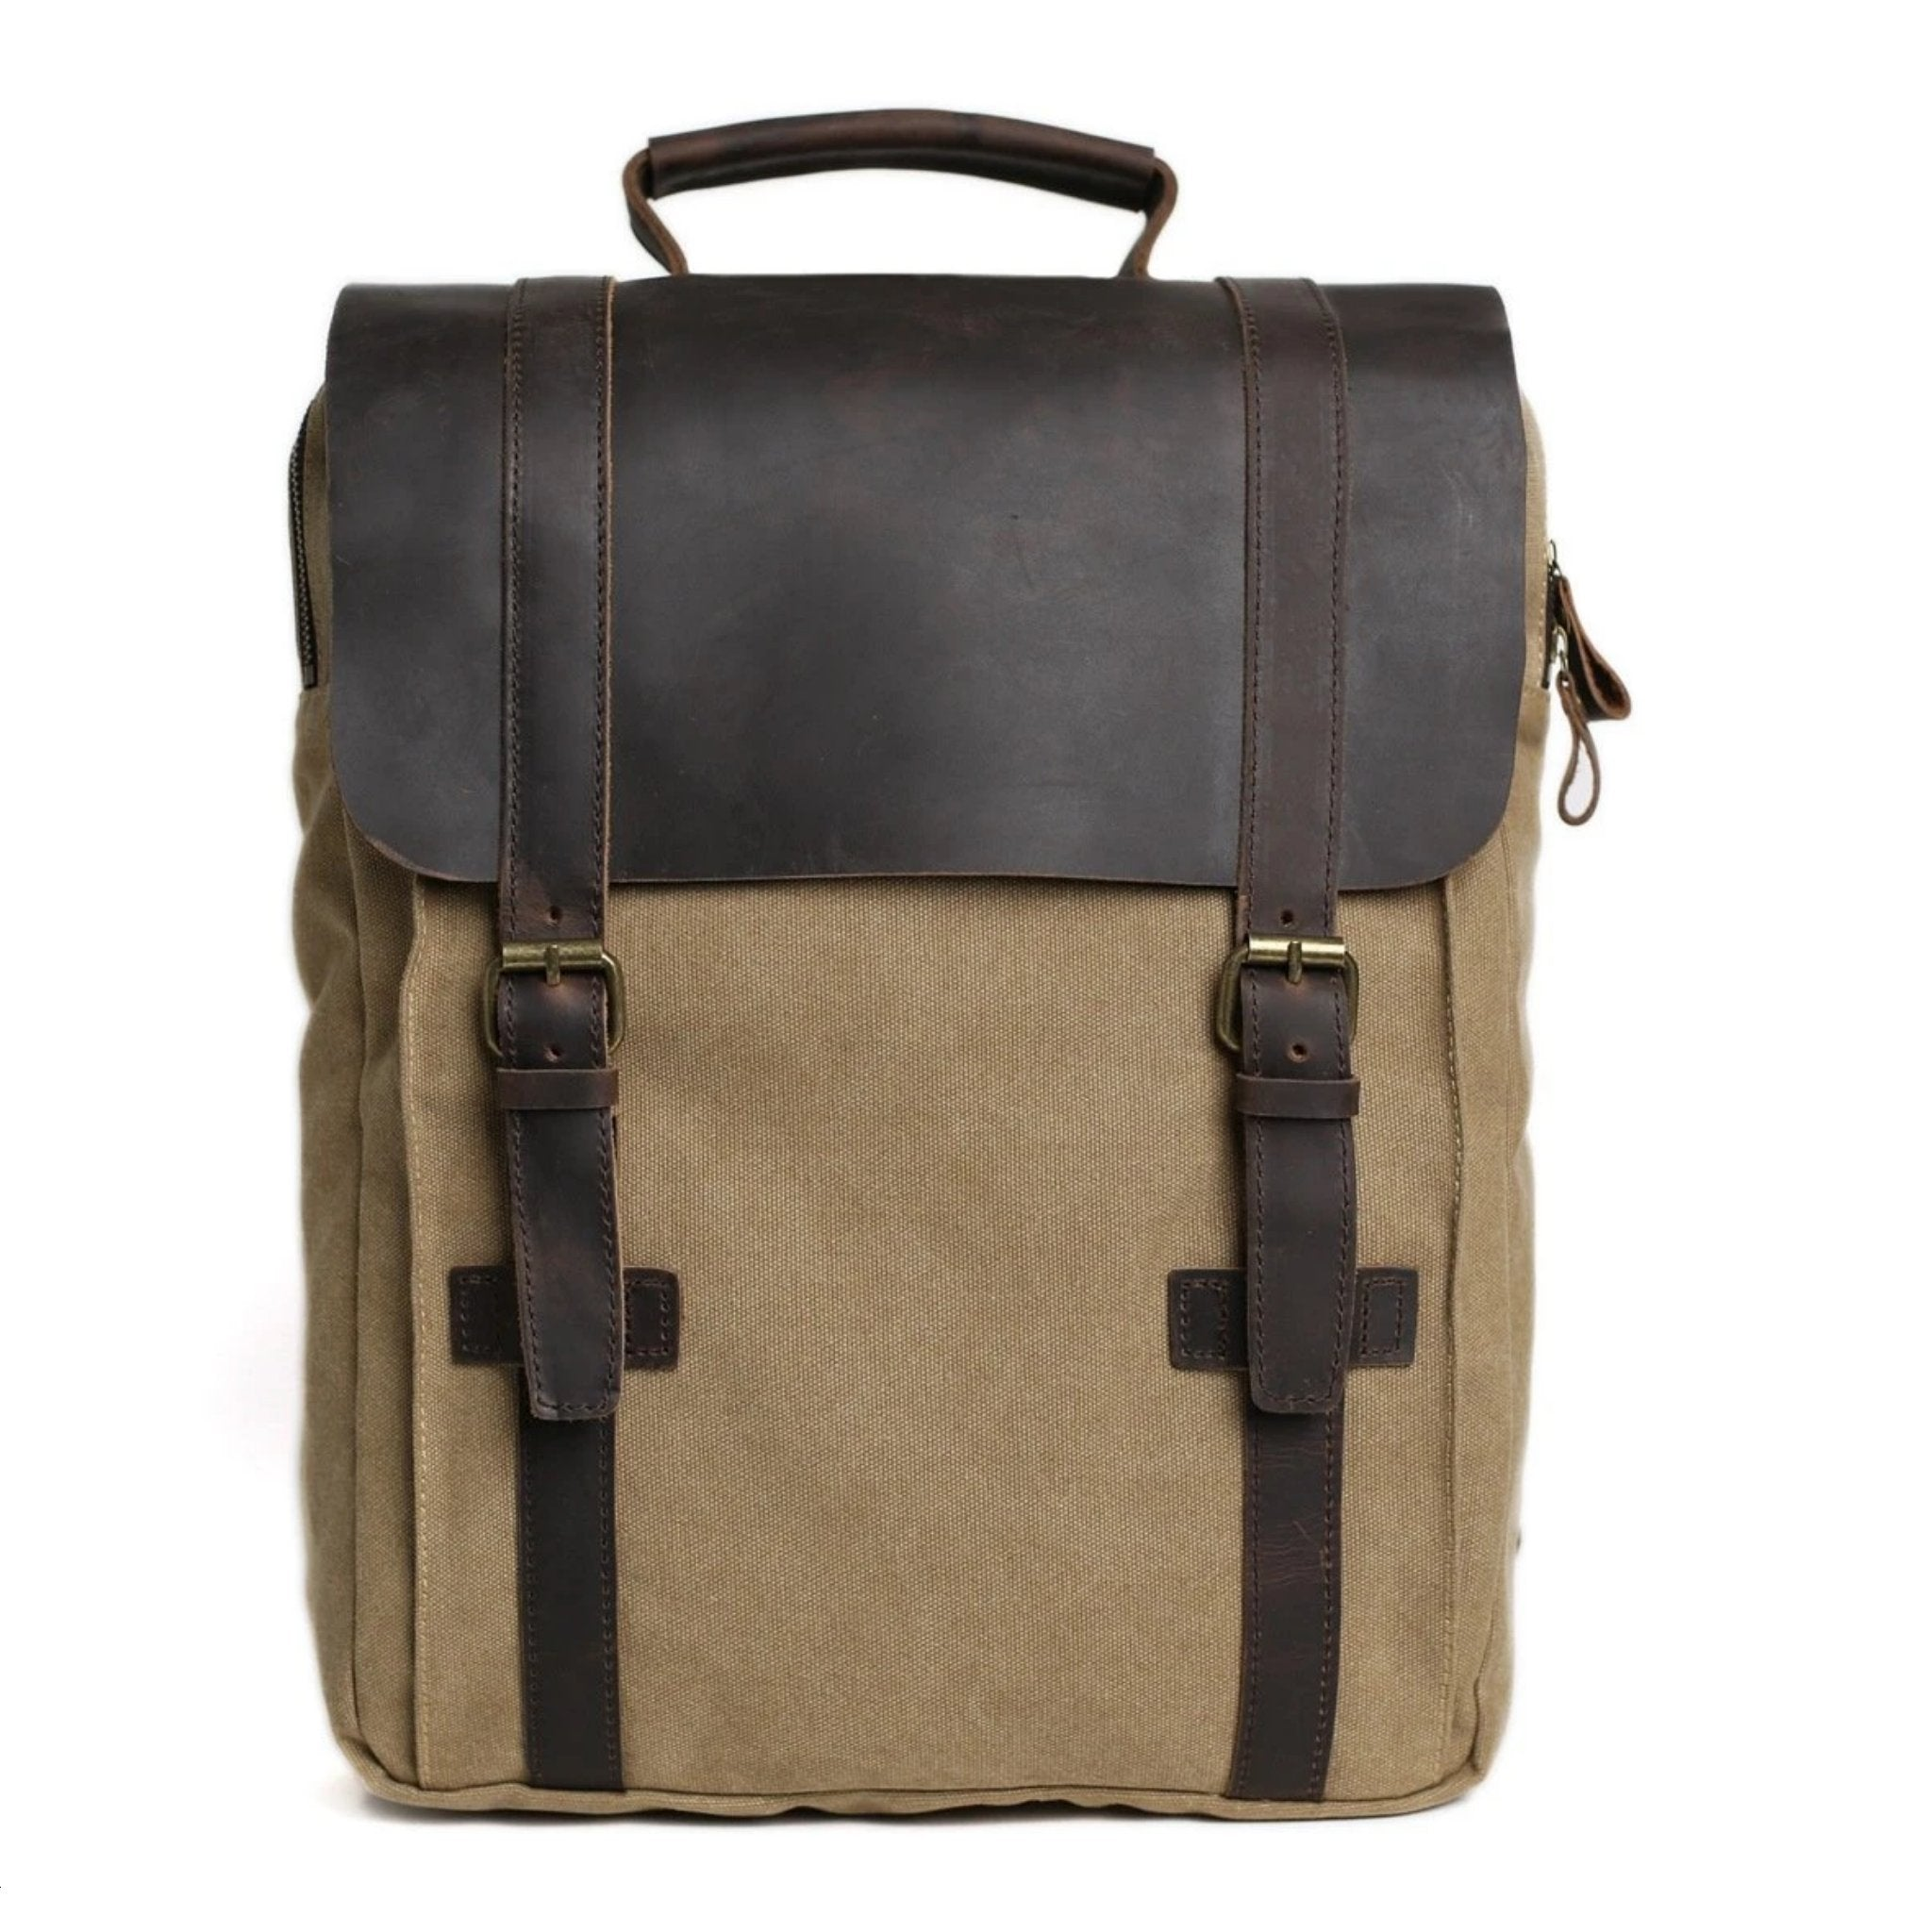 Waxed Canvas and Leather Double Strap Backpack - Khaki - Blue Sebe